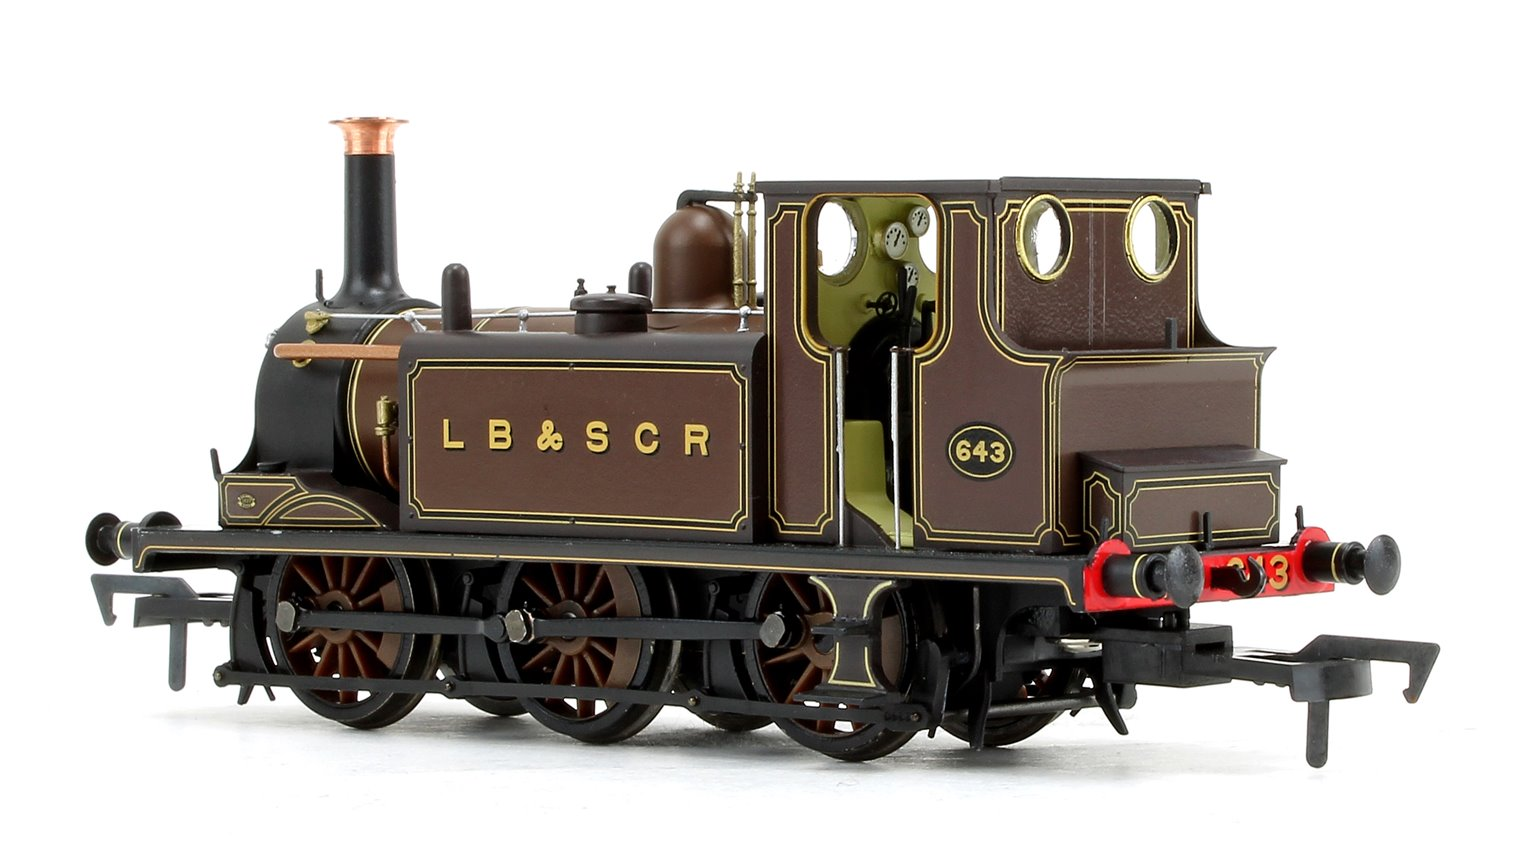 Stroudley Terrier A1 Class LBSC (Ex Gipsyhill) 0-6-0 Tank Locomotive No.643 DCC Ready